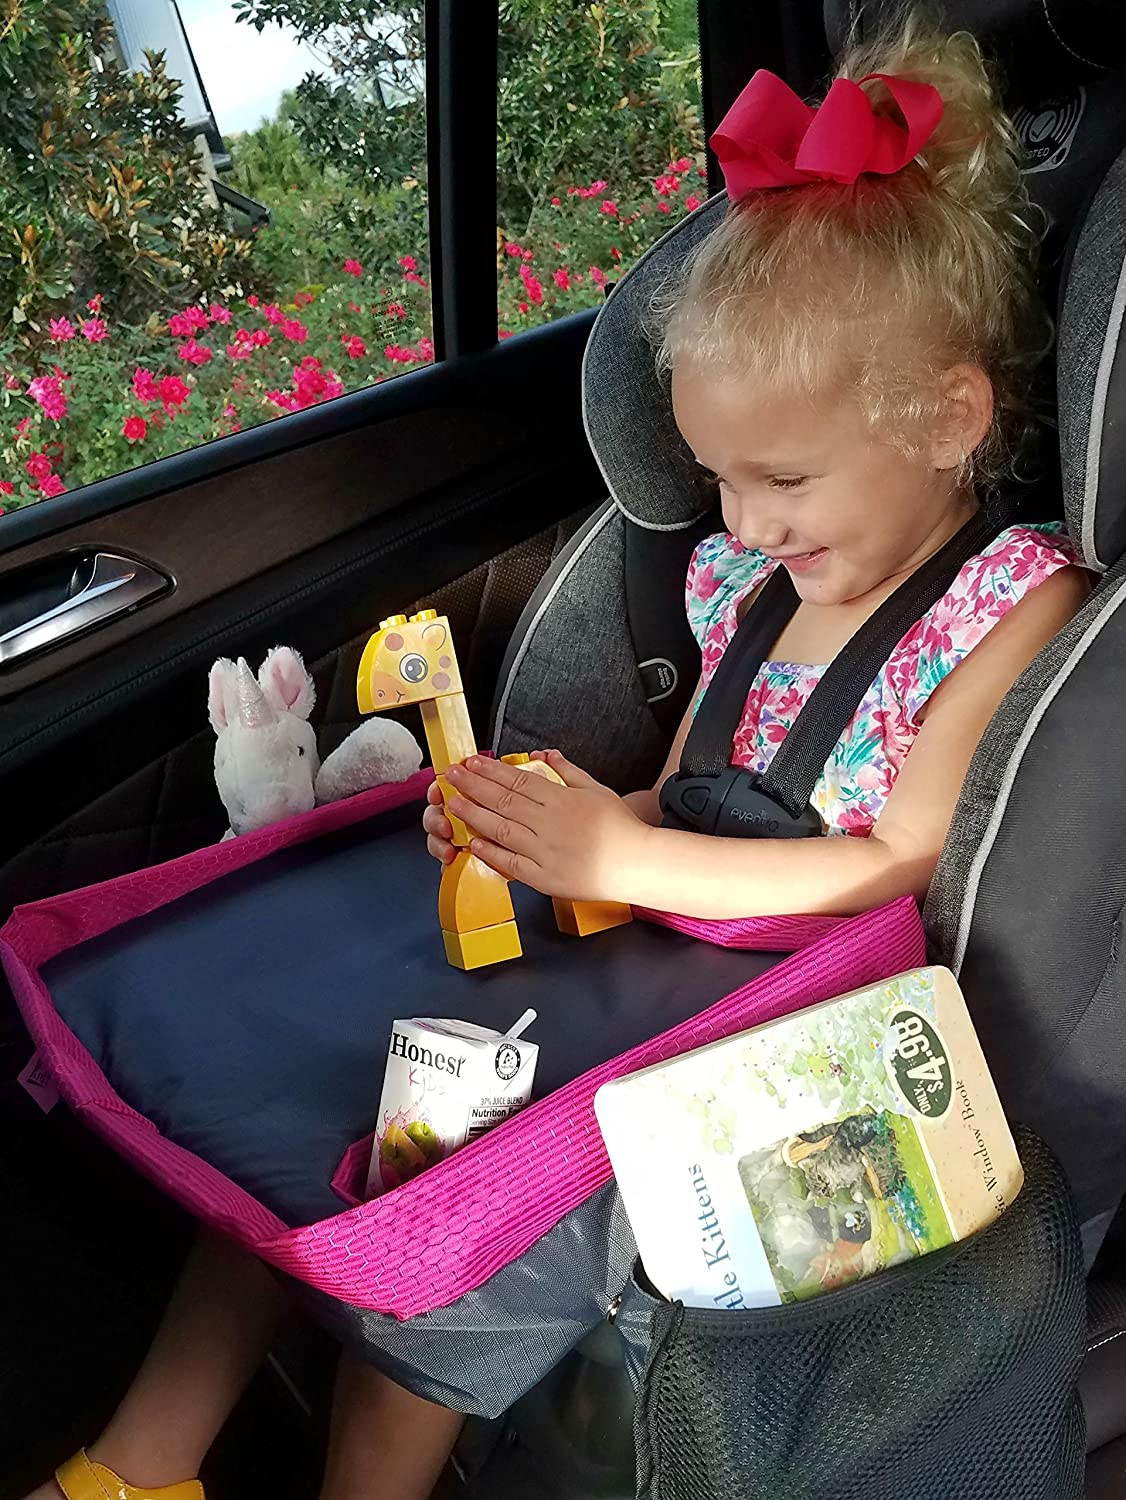 Car Seat Tray Lap Desk For Kids Toddlers